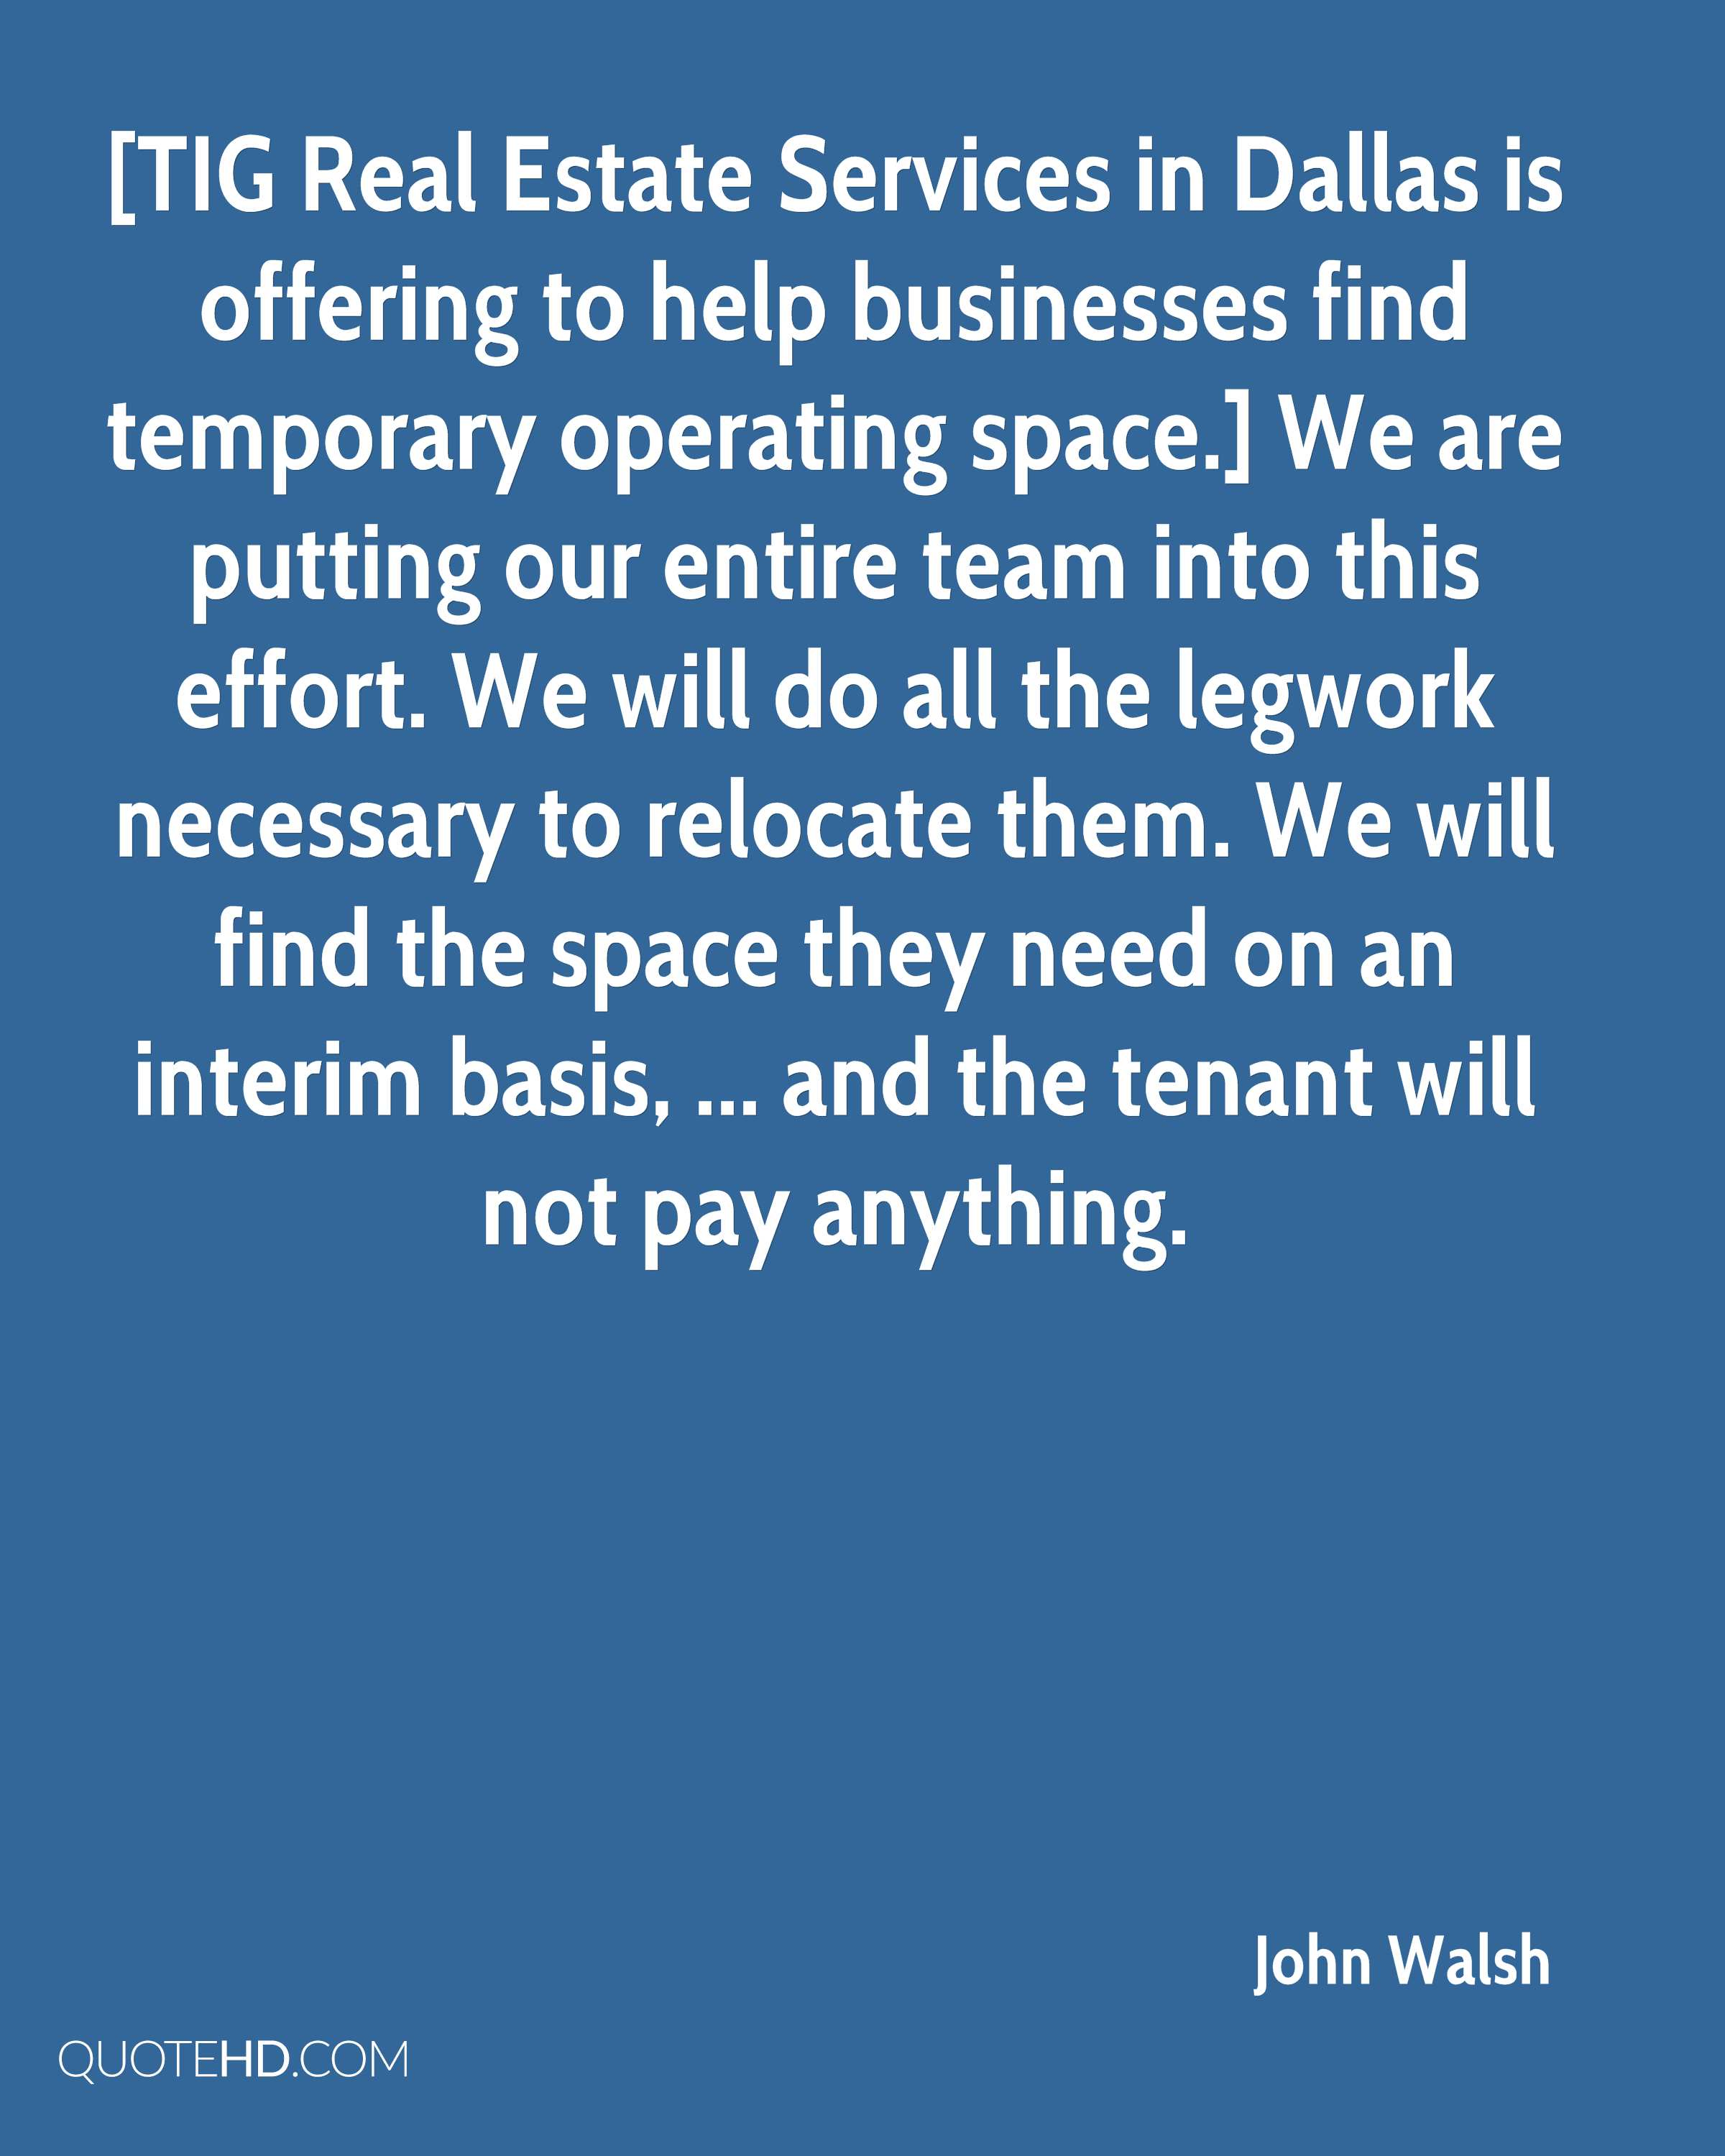 [TIG Real Estate Services in Dallas is offering to help businesses find temporary operating space.] We are putting our entire team into this effort. We will do all the legwork necessary to relocate them. We will find the space they need on an interim basis, ... and the tenant will not pay anything.